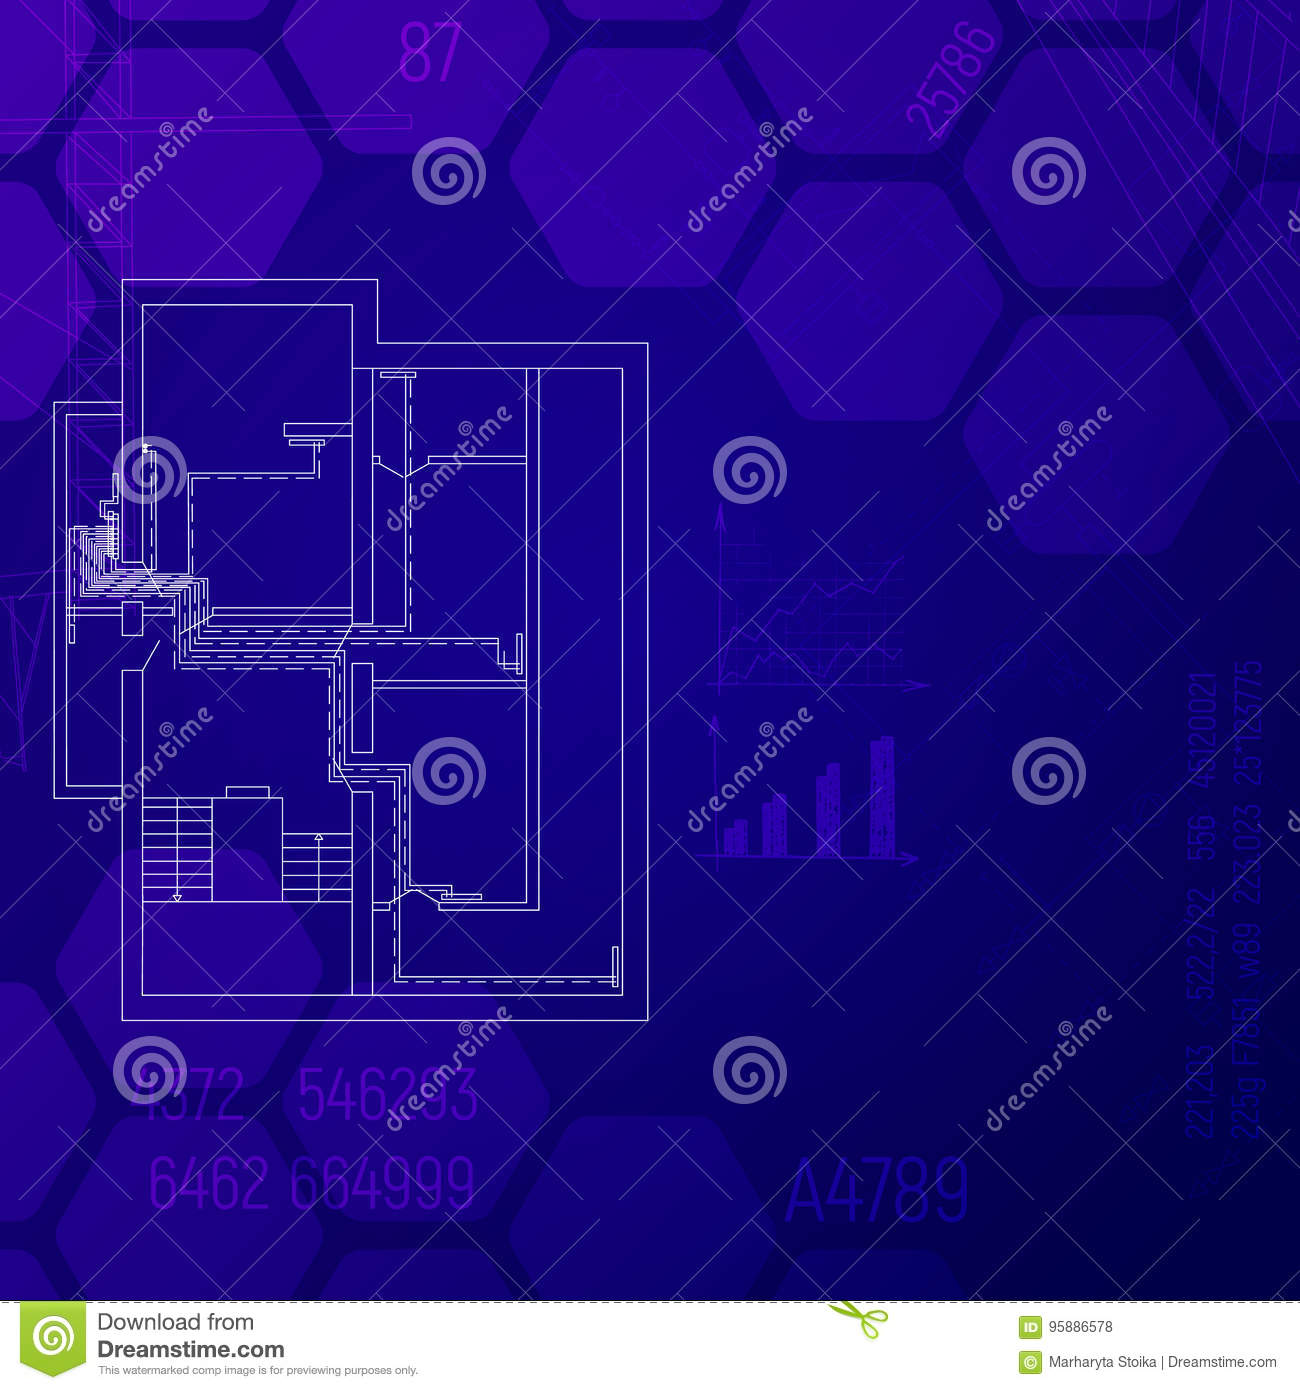 hight resolution of blue print with a heating system hvac engineering graphics cad